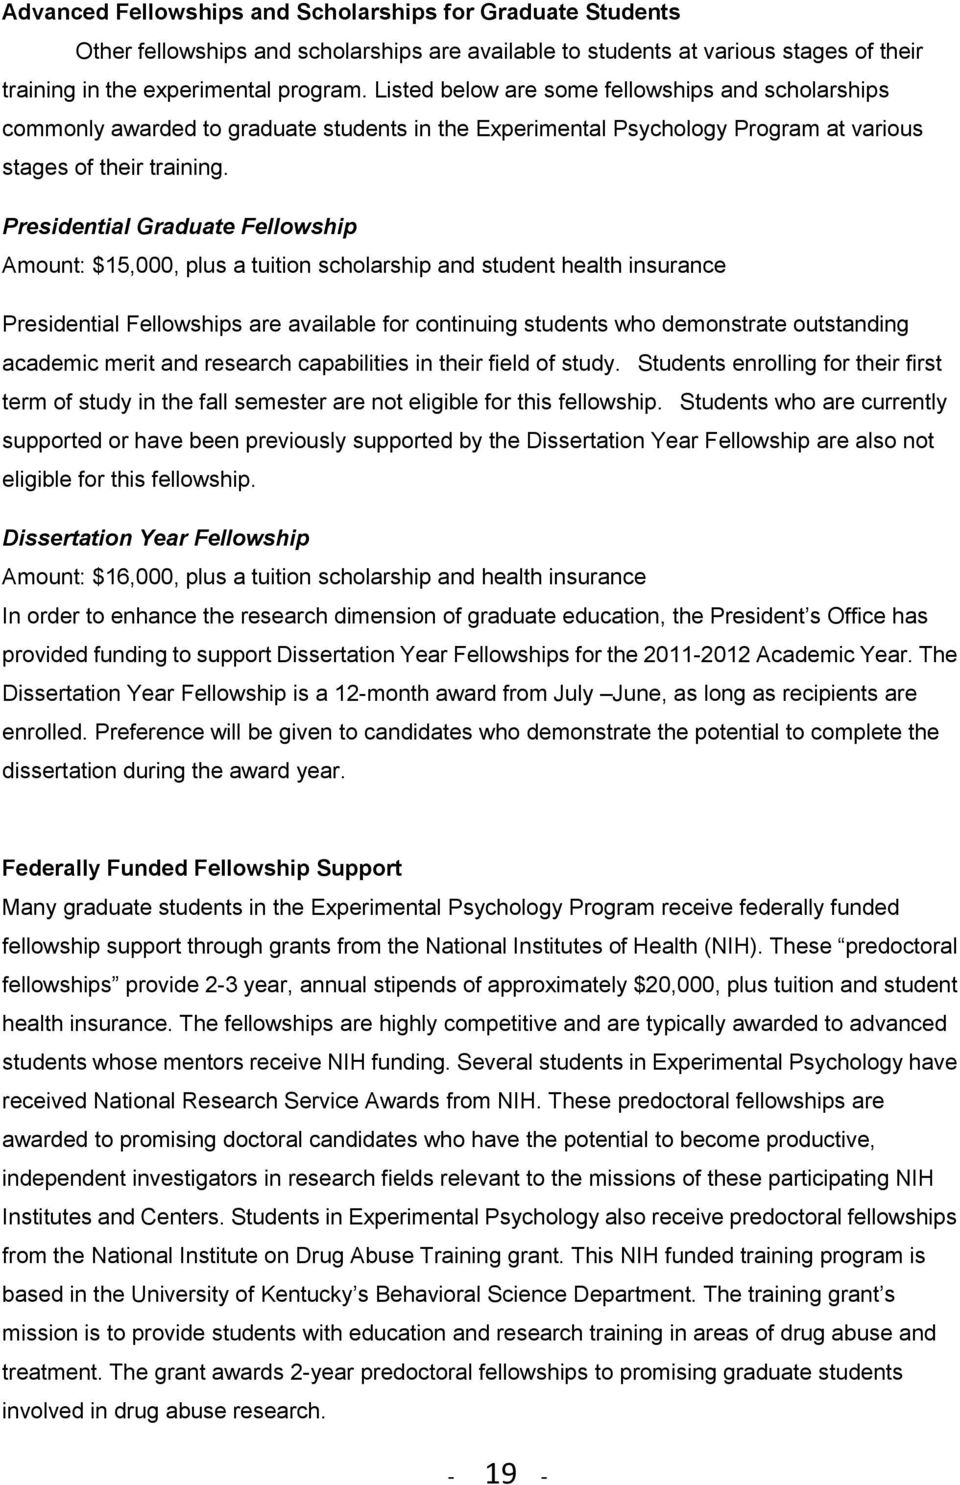 Presidential Graduate Fellowship Amount: $15,000, plus a tuition scholarship and student health insurance Presidential Fellowships are available for continuing students who demonstrate outstanding